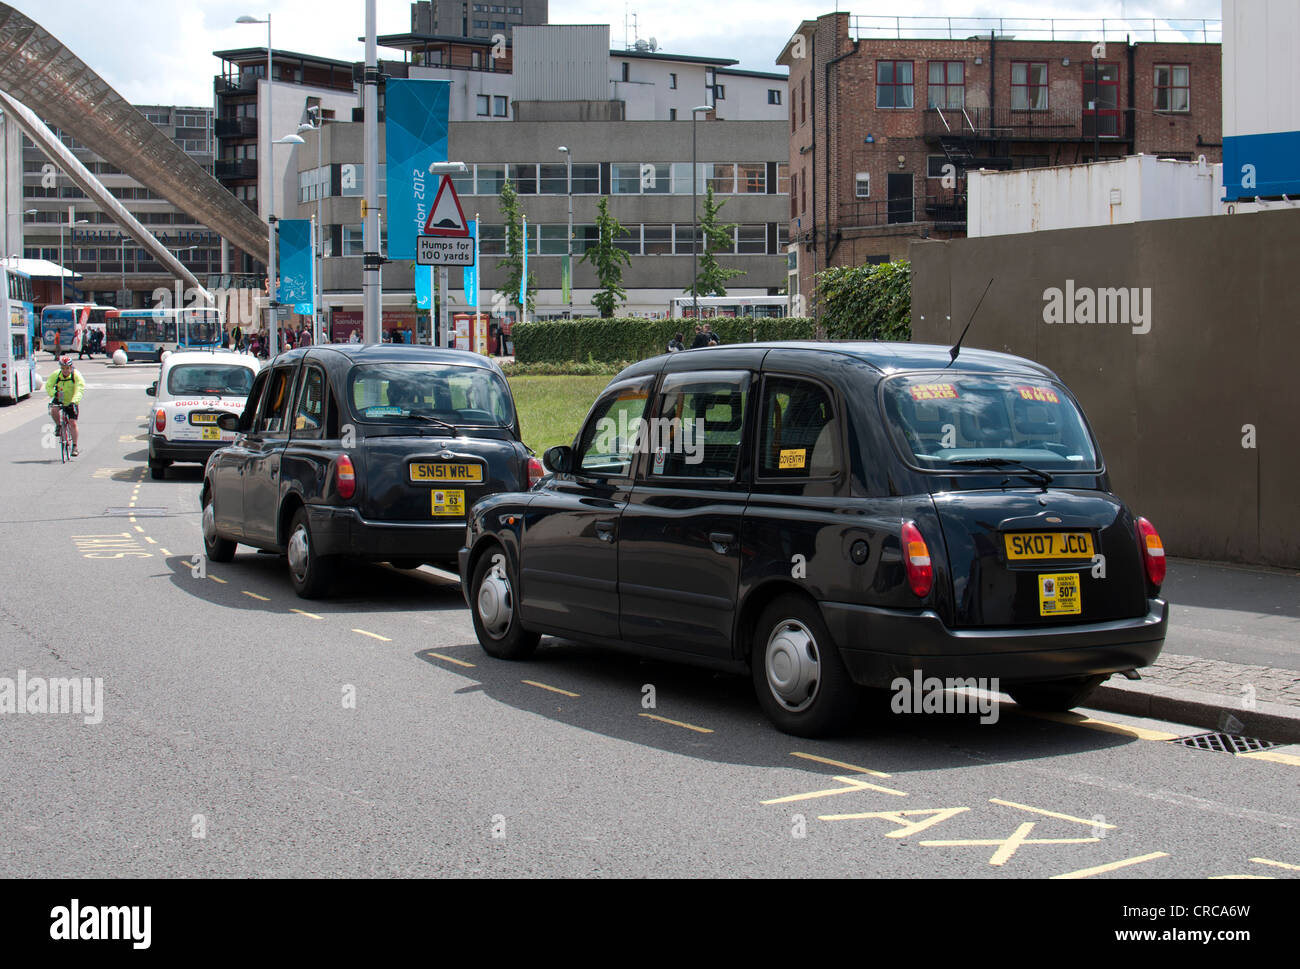 Taxis in city centre, Coventry, UK - Stock Image